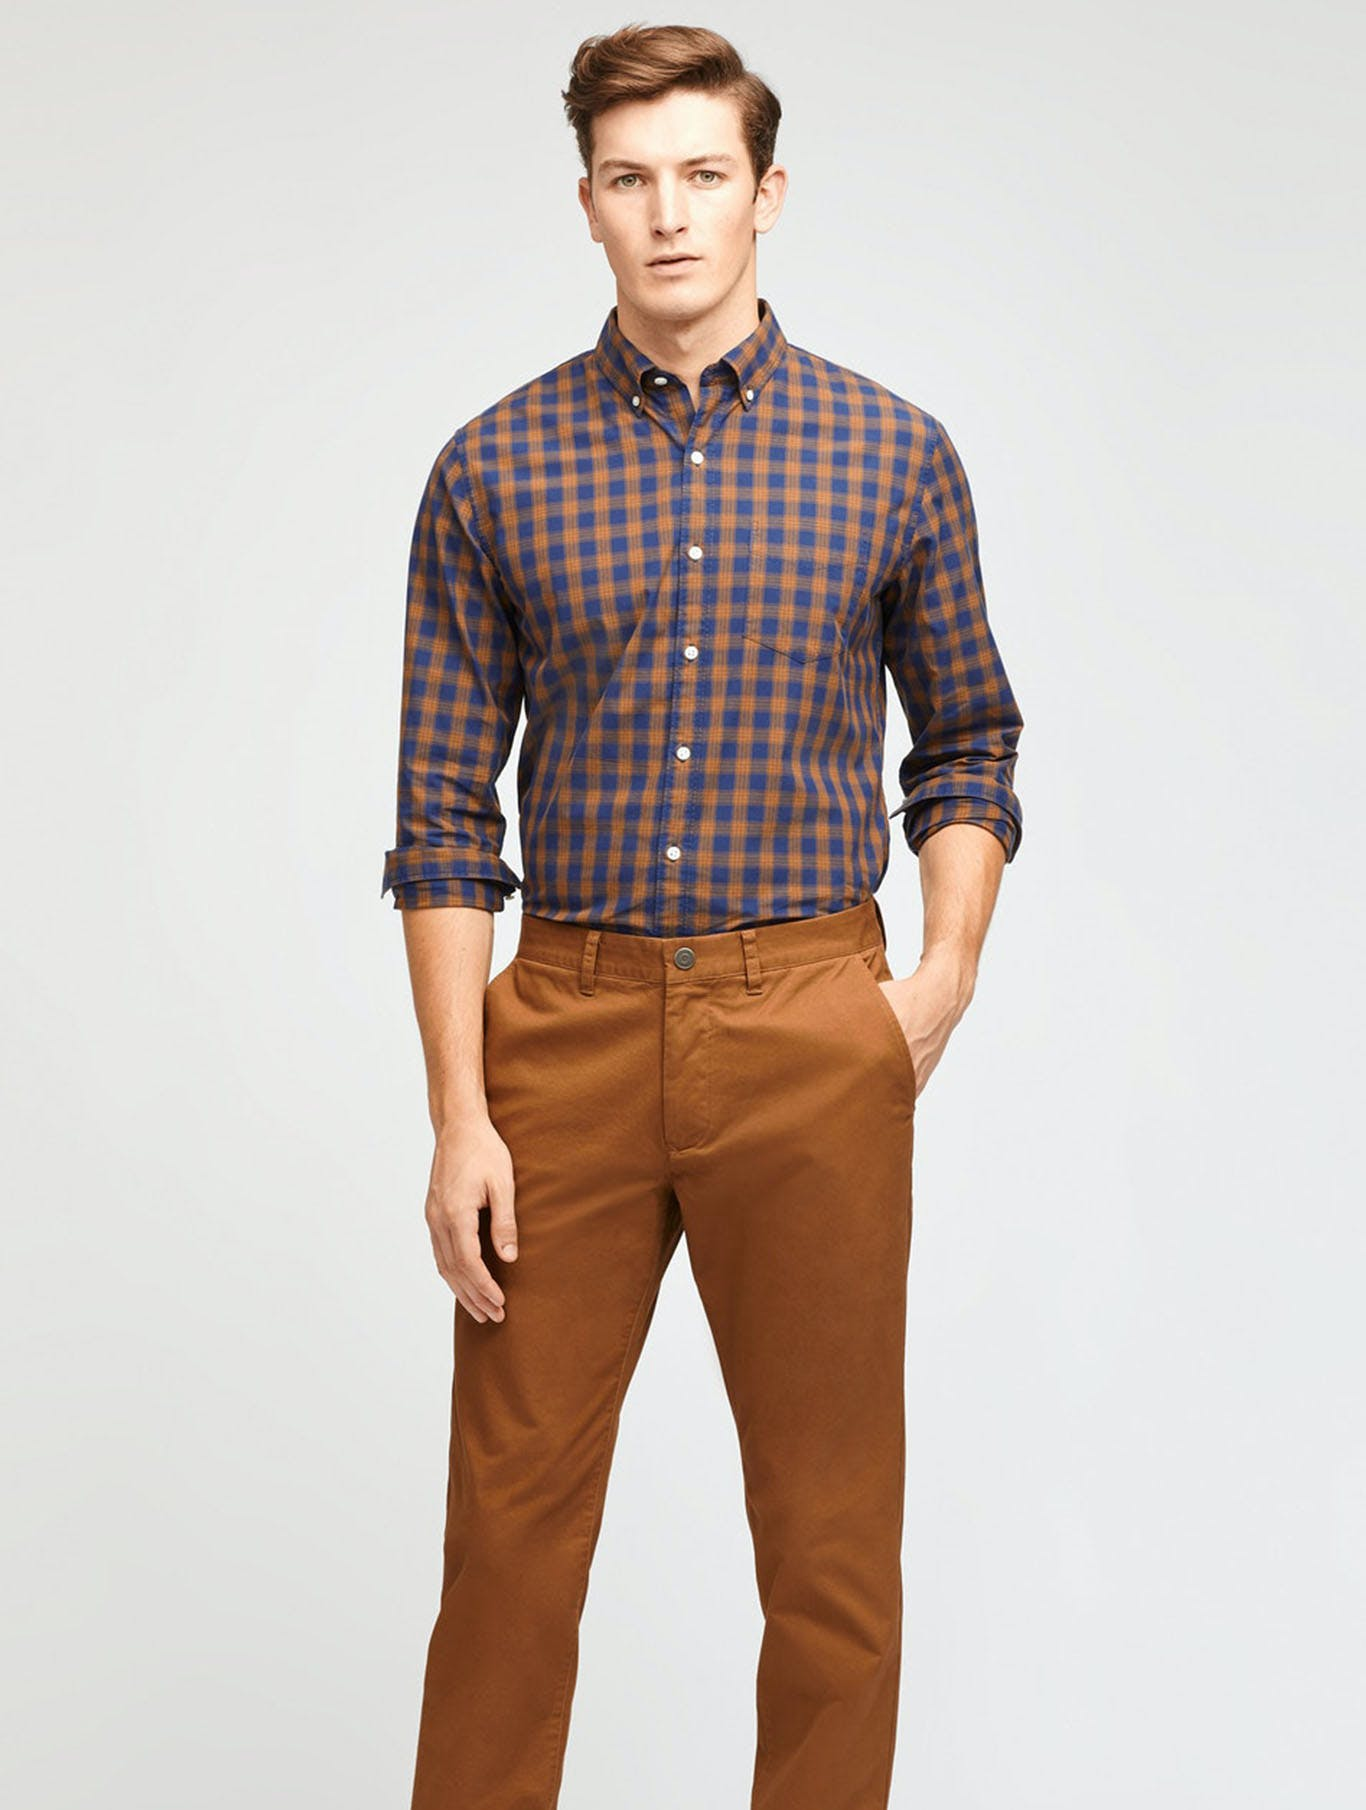 Image of man in chinos